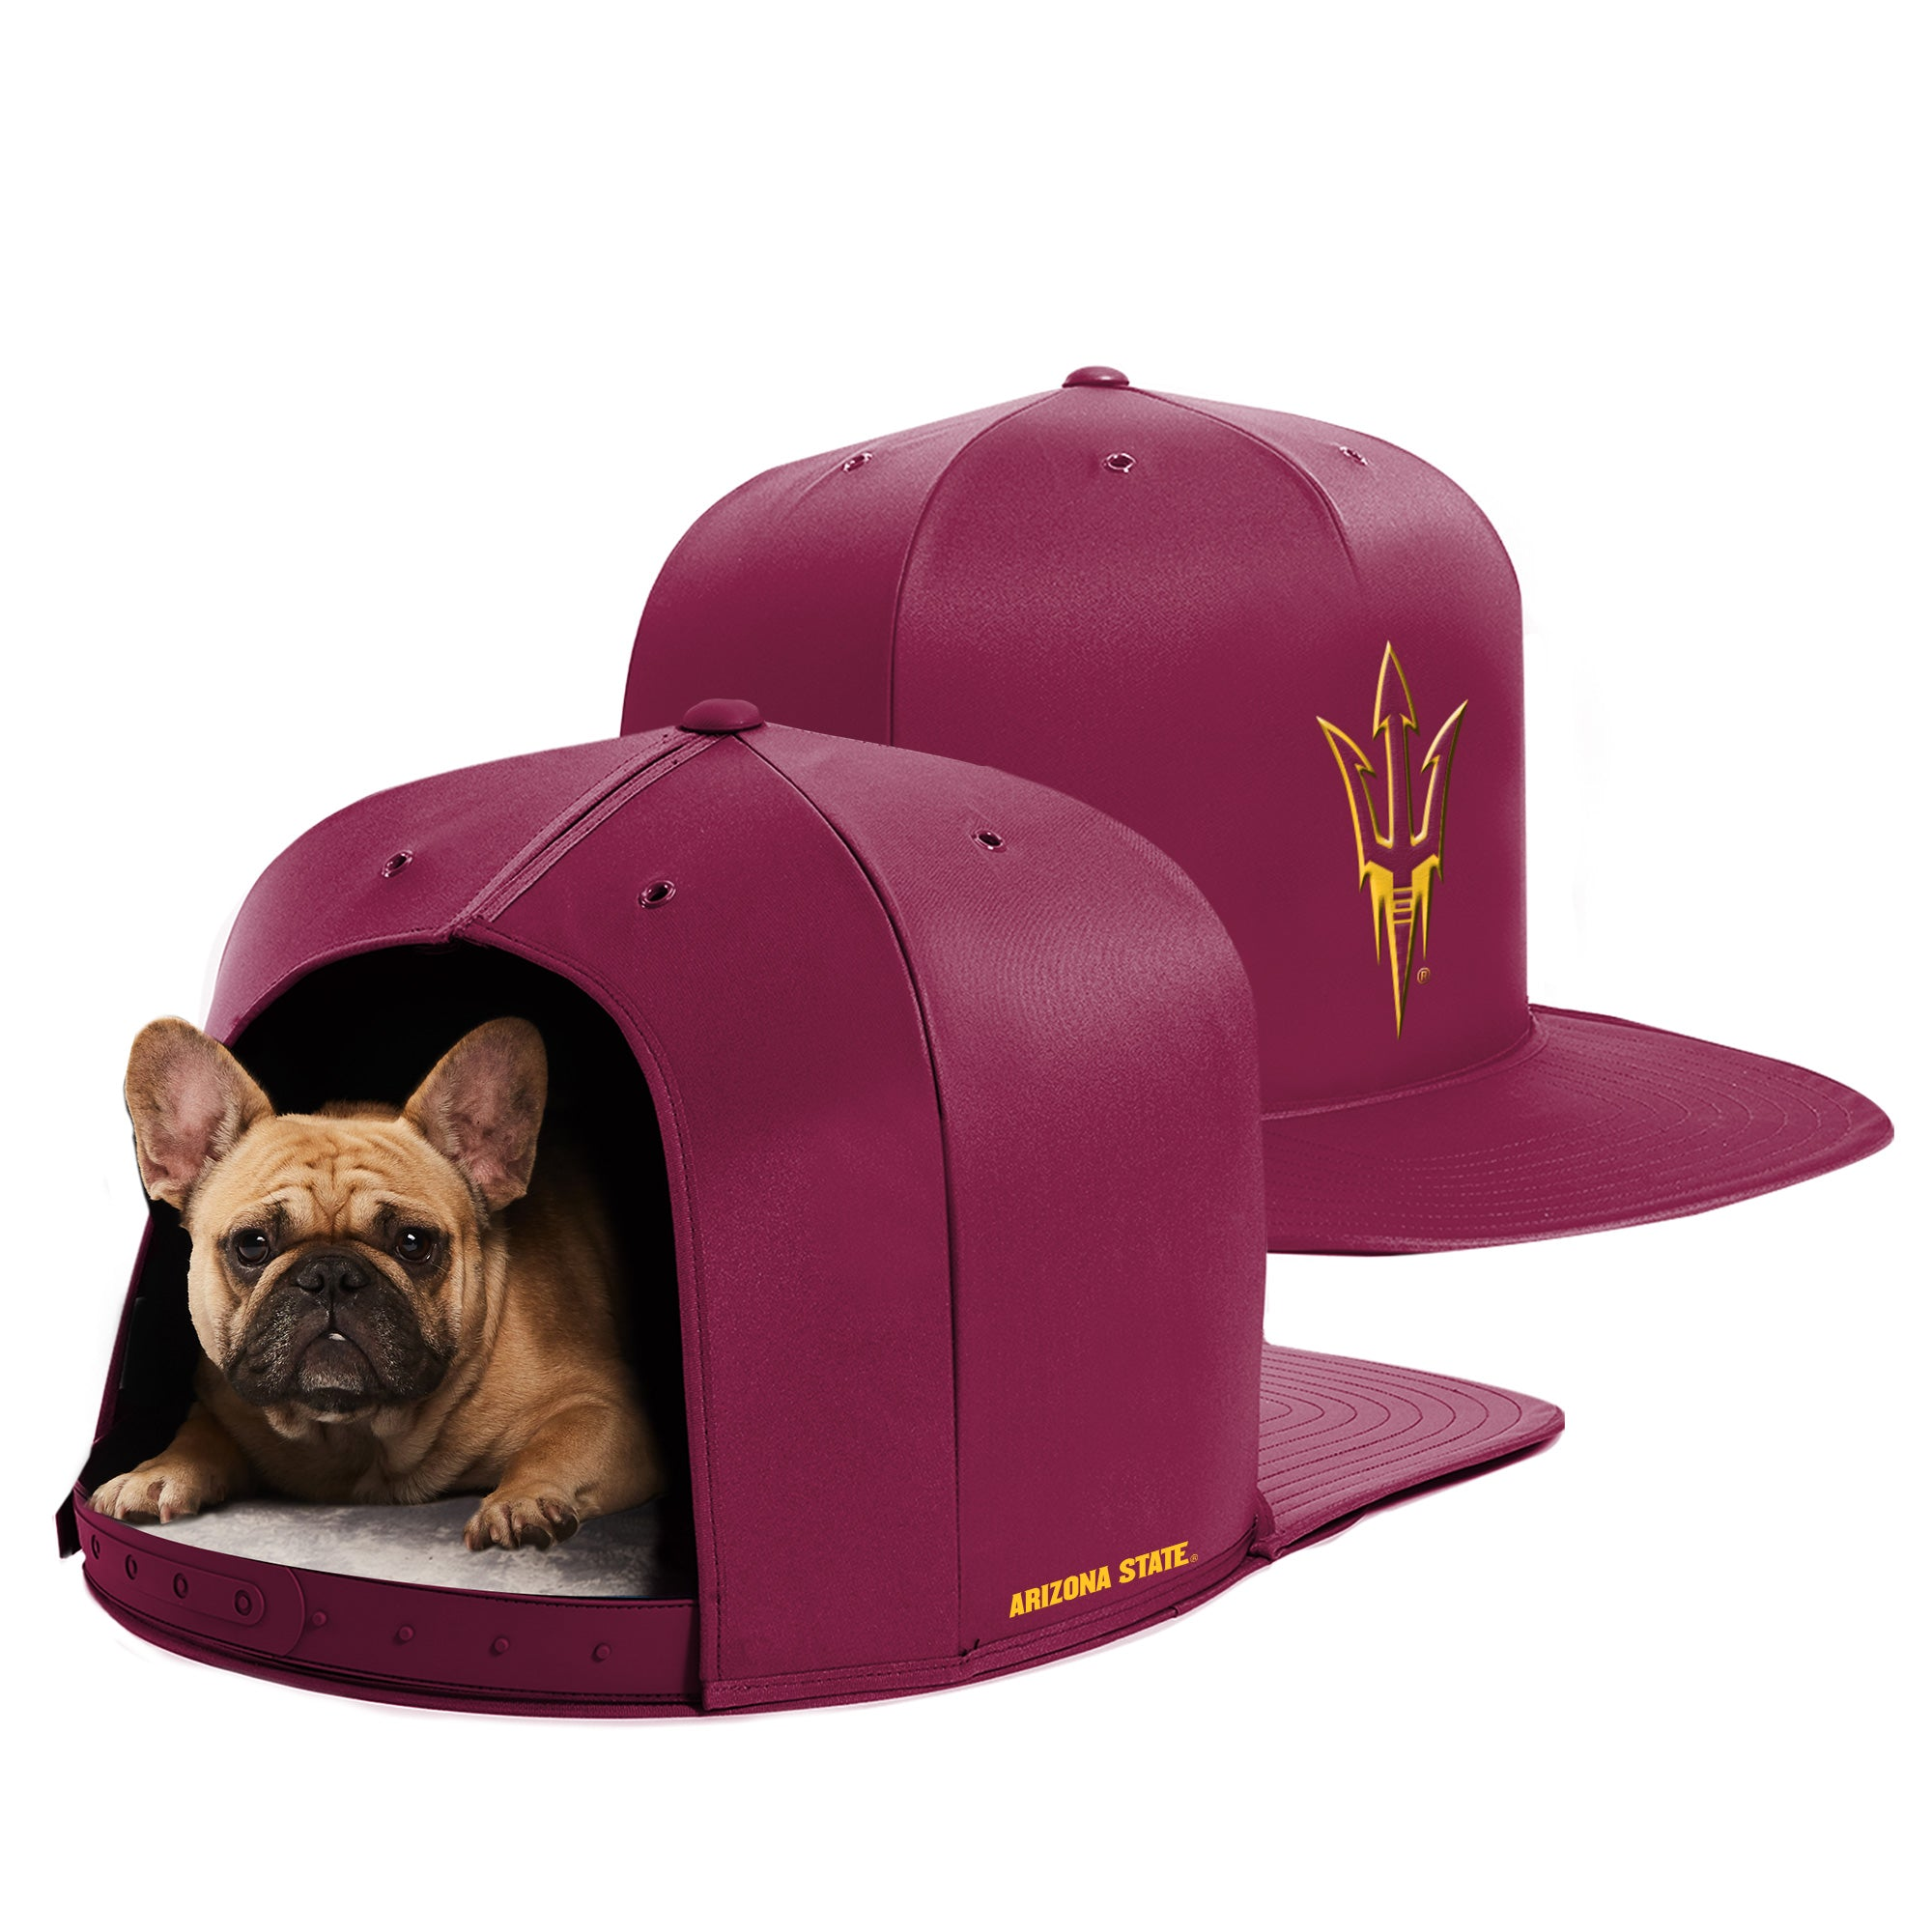 Nap Cap - Arizona State University - Pet Bed